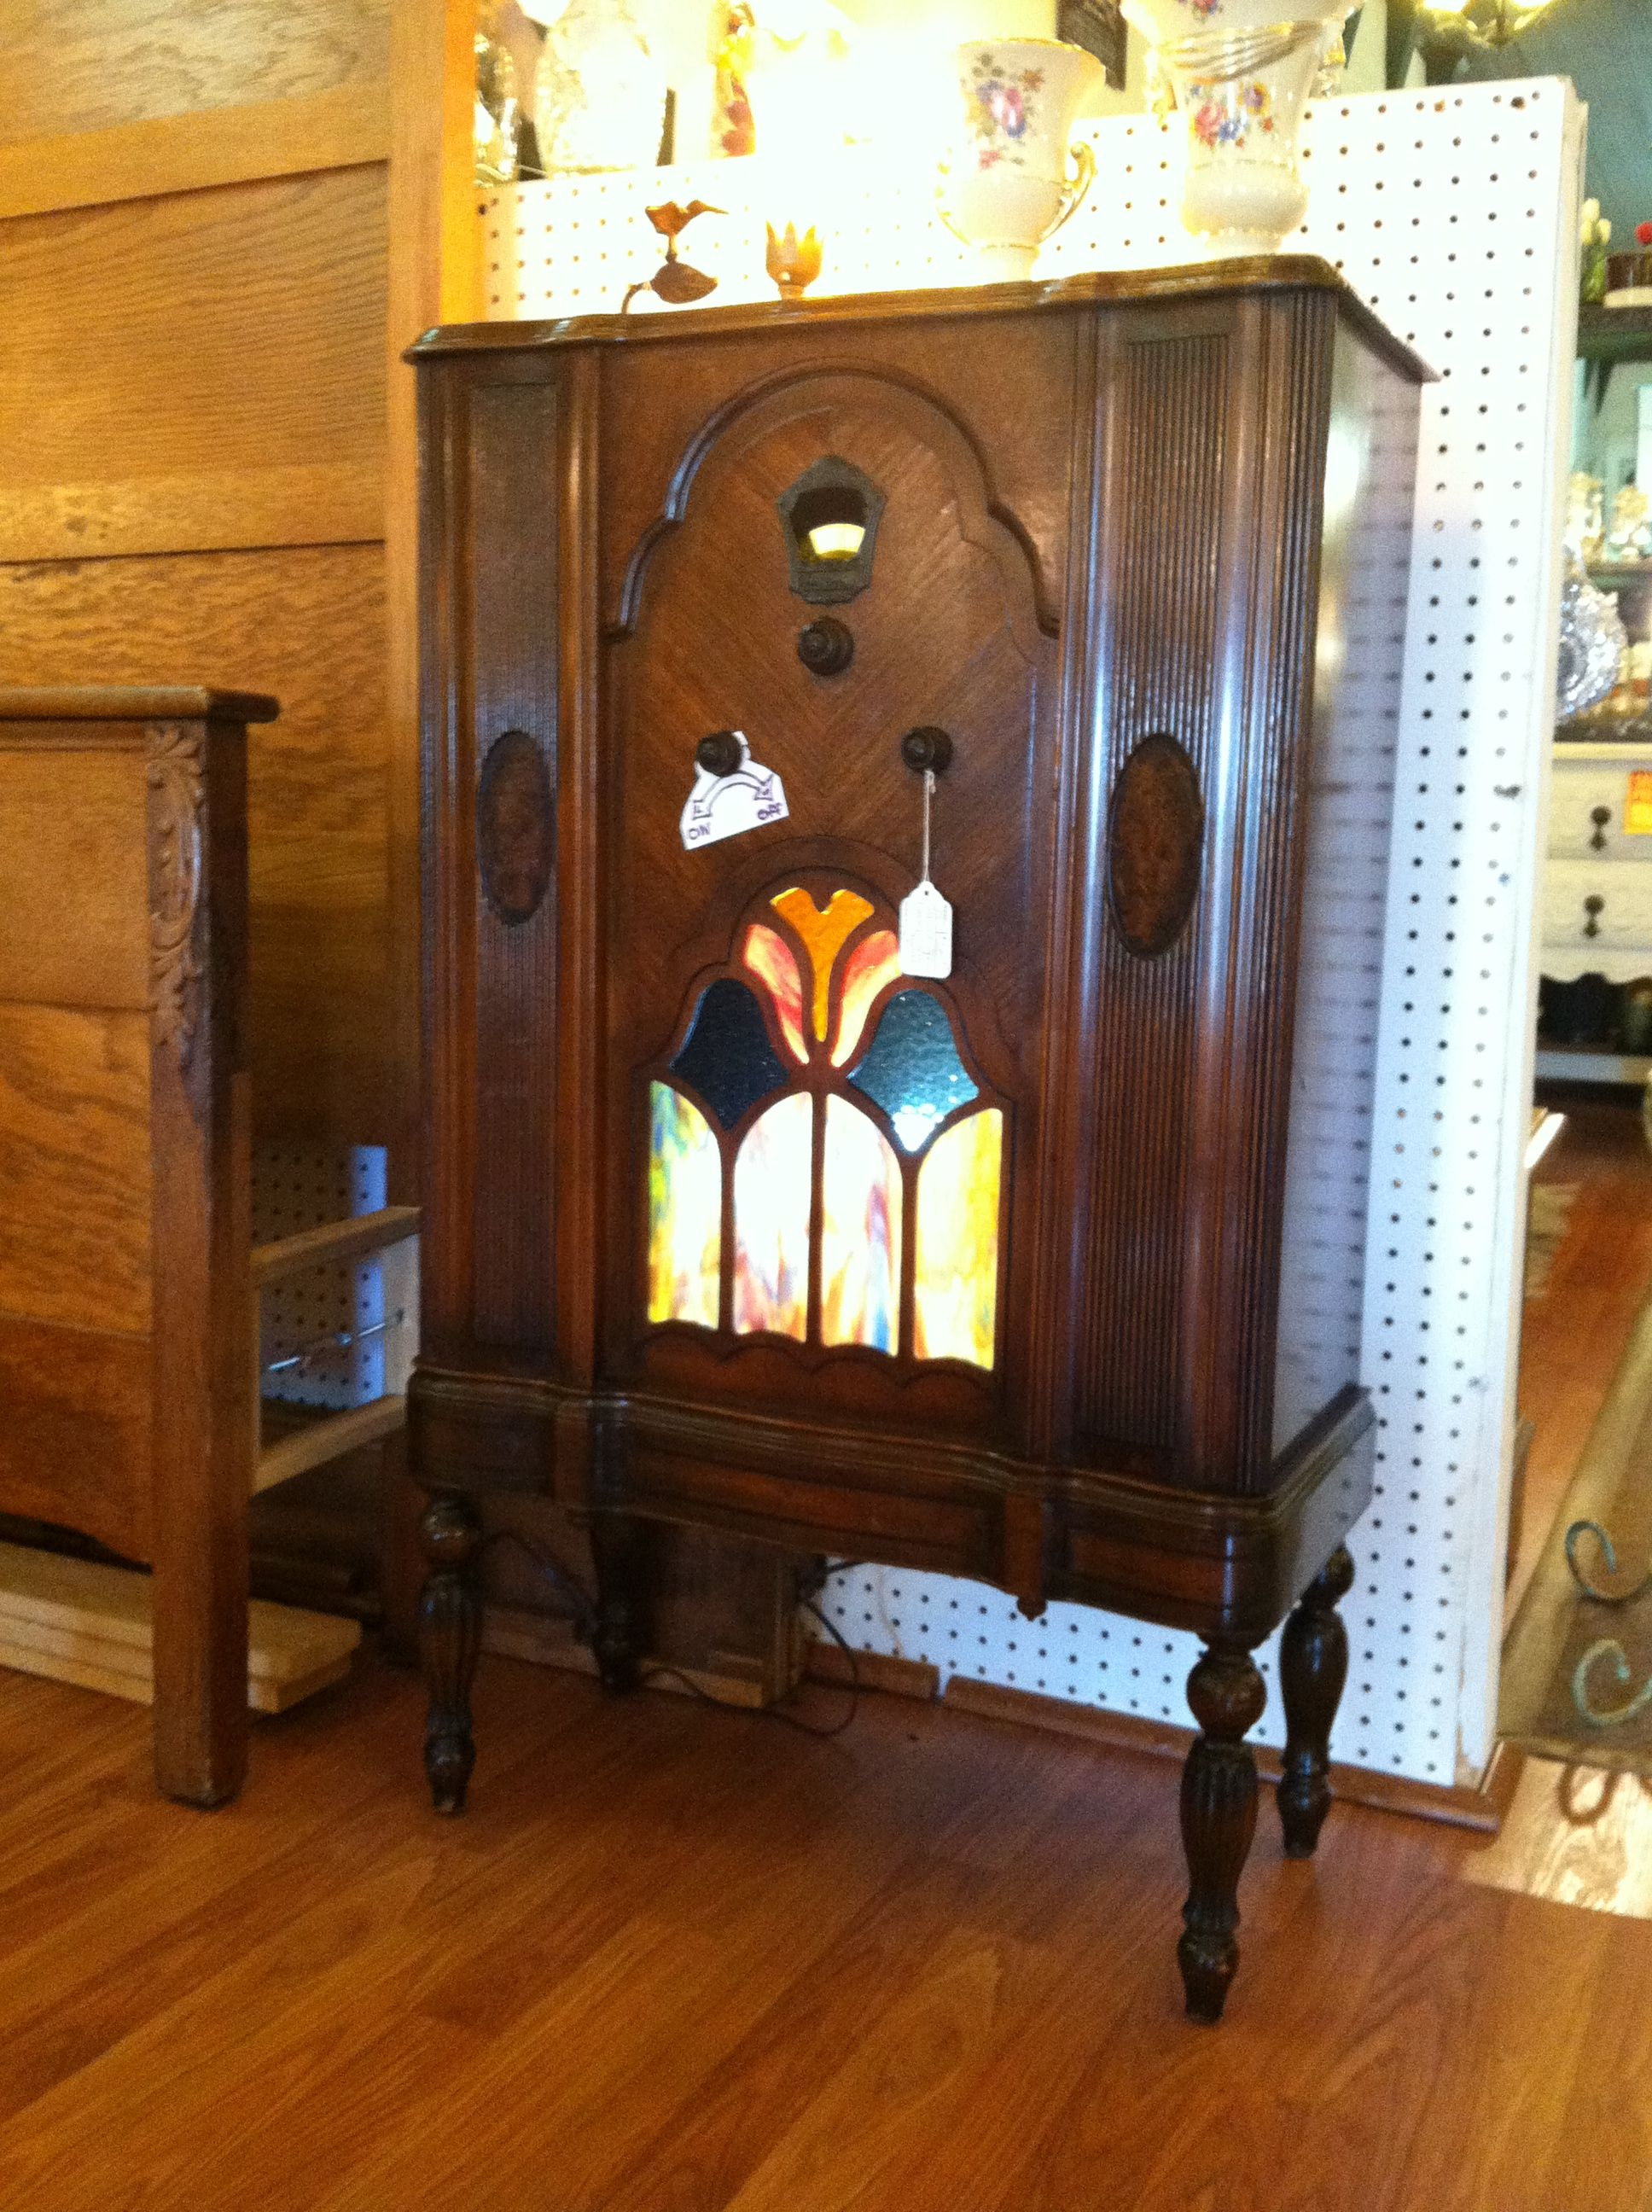 1920 s radio cabinet with stained glass The first radio invented